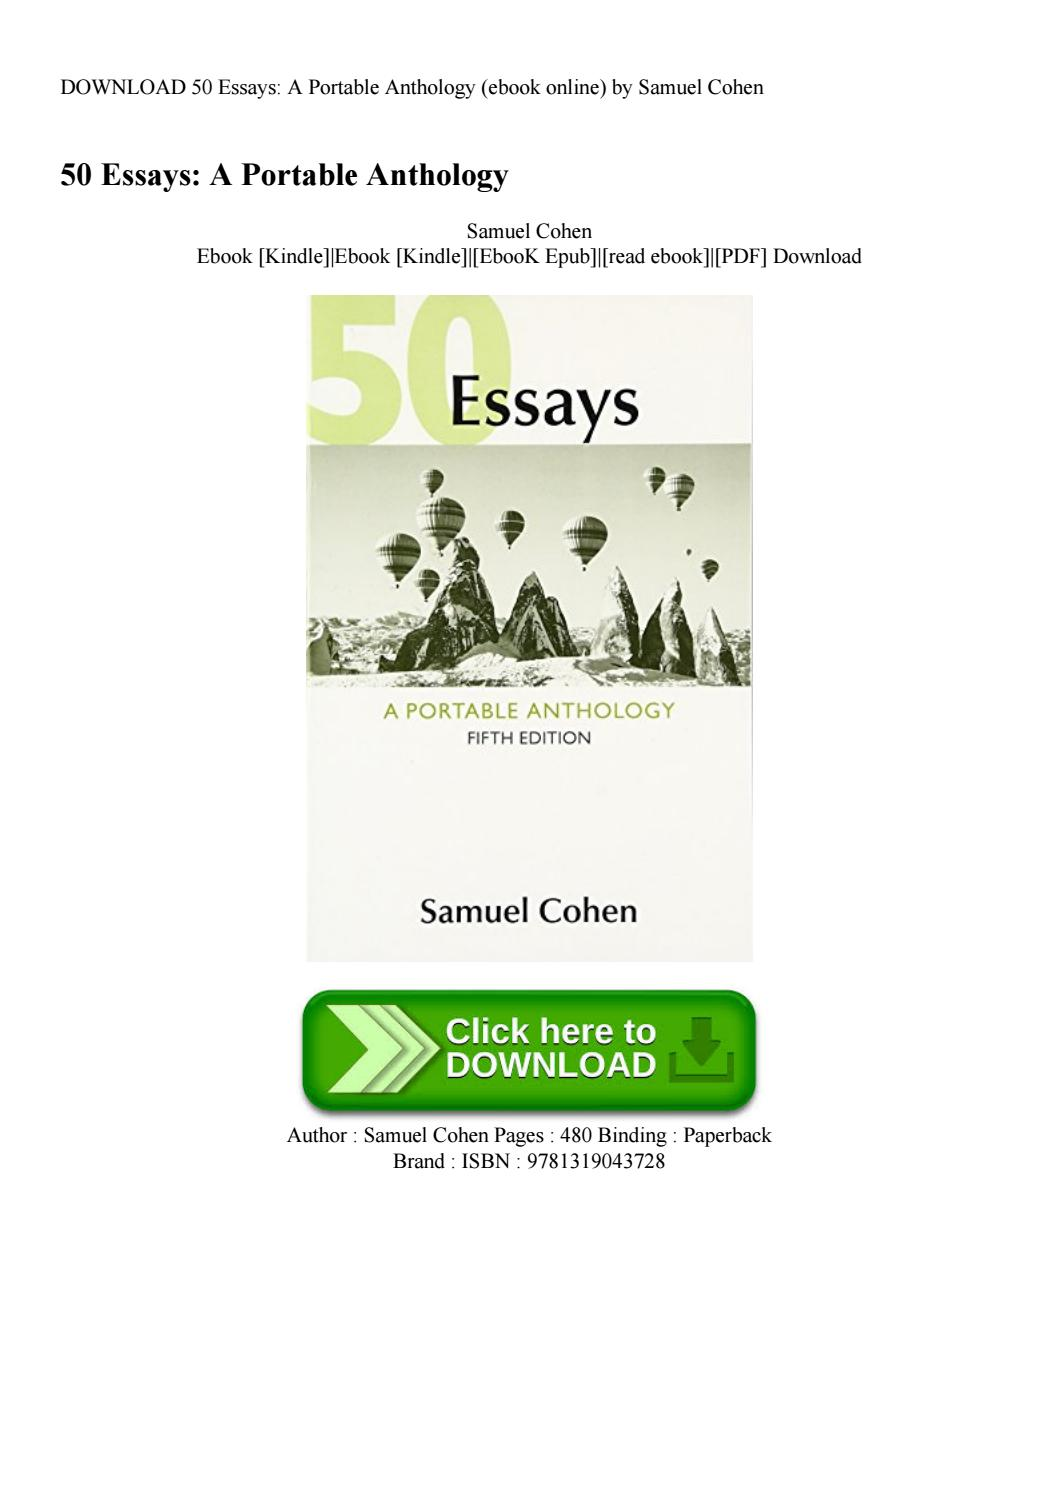 009 Essay Example Page 1 Essays Portable Anthology 5th Top 50 A Edition Answer Key Table Of Contents Summary Full